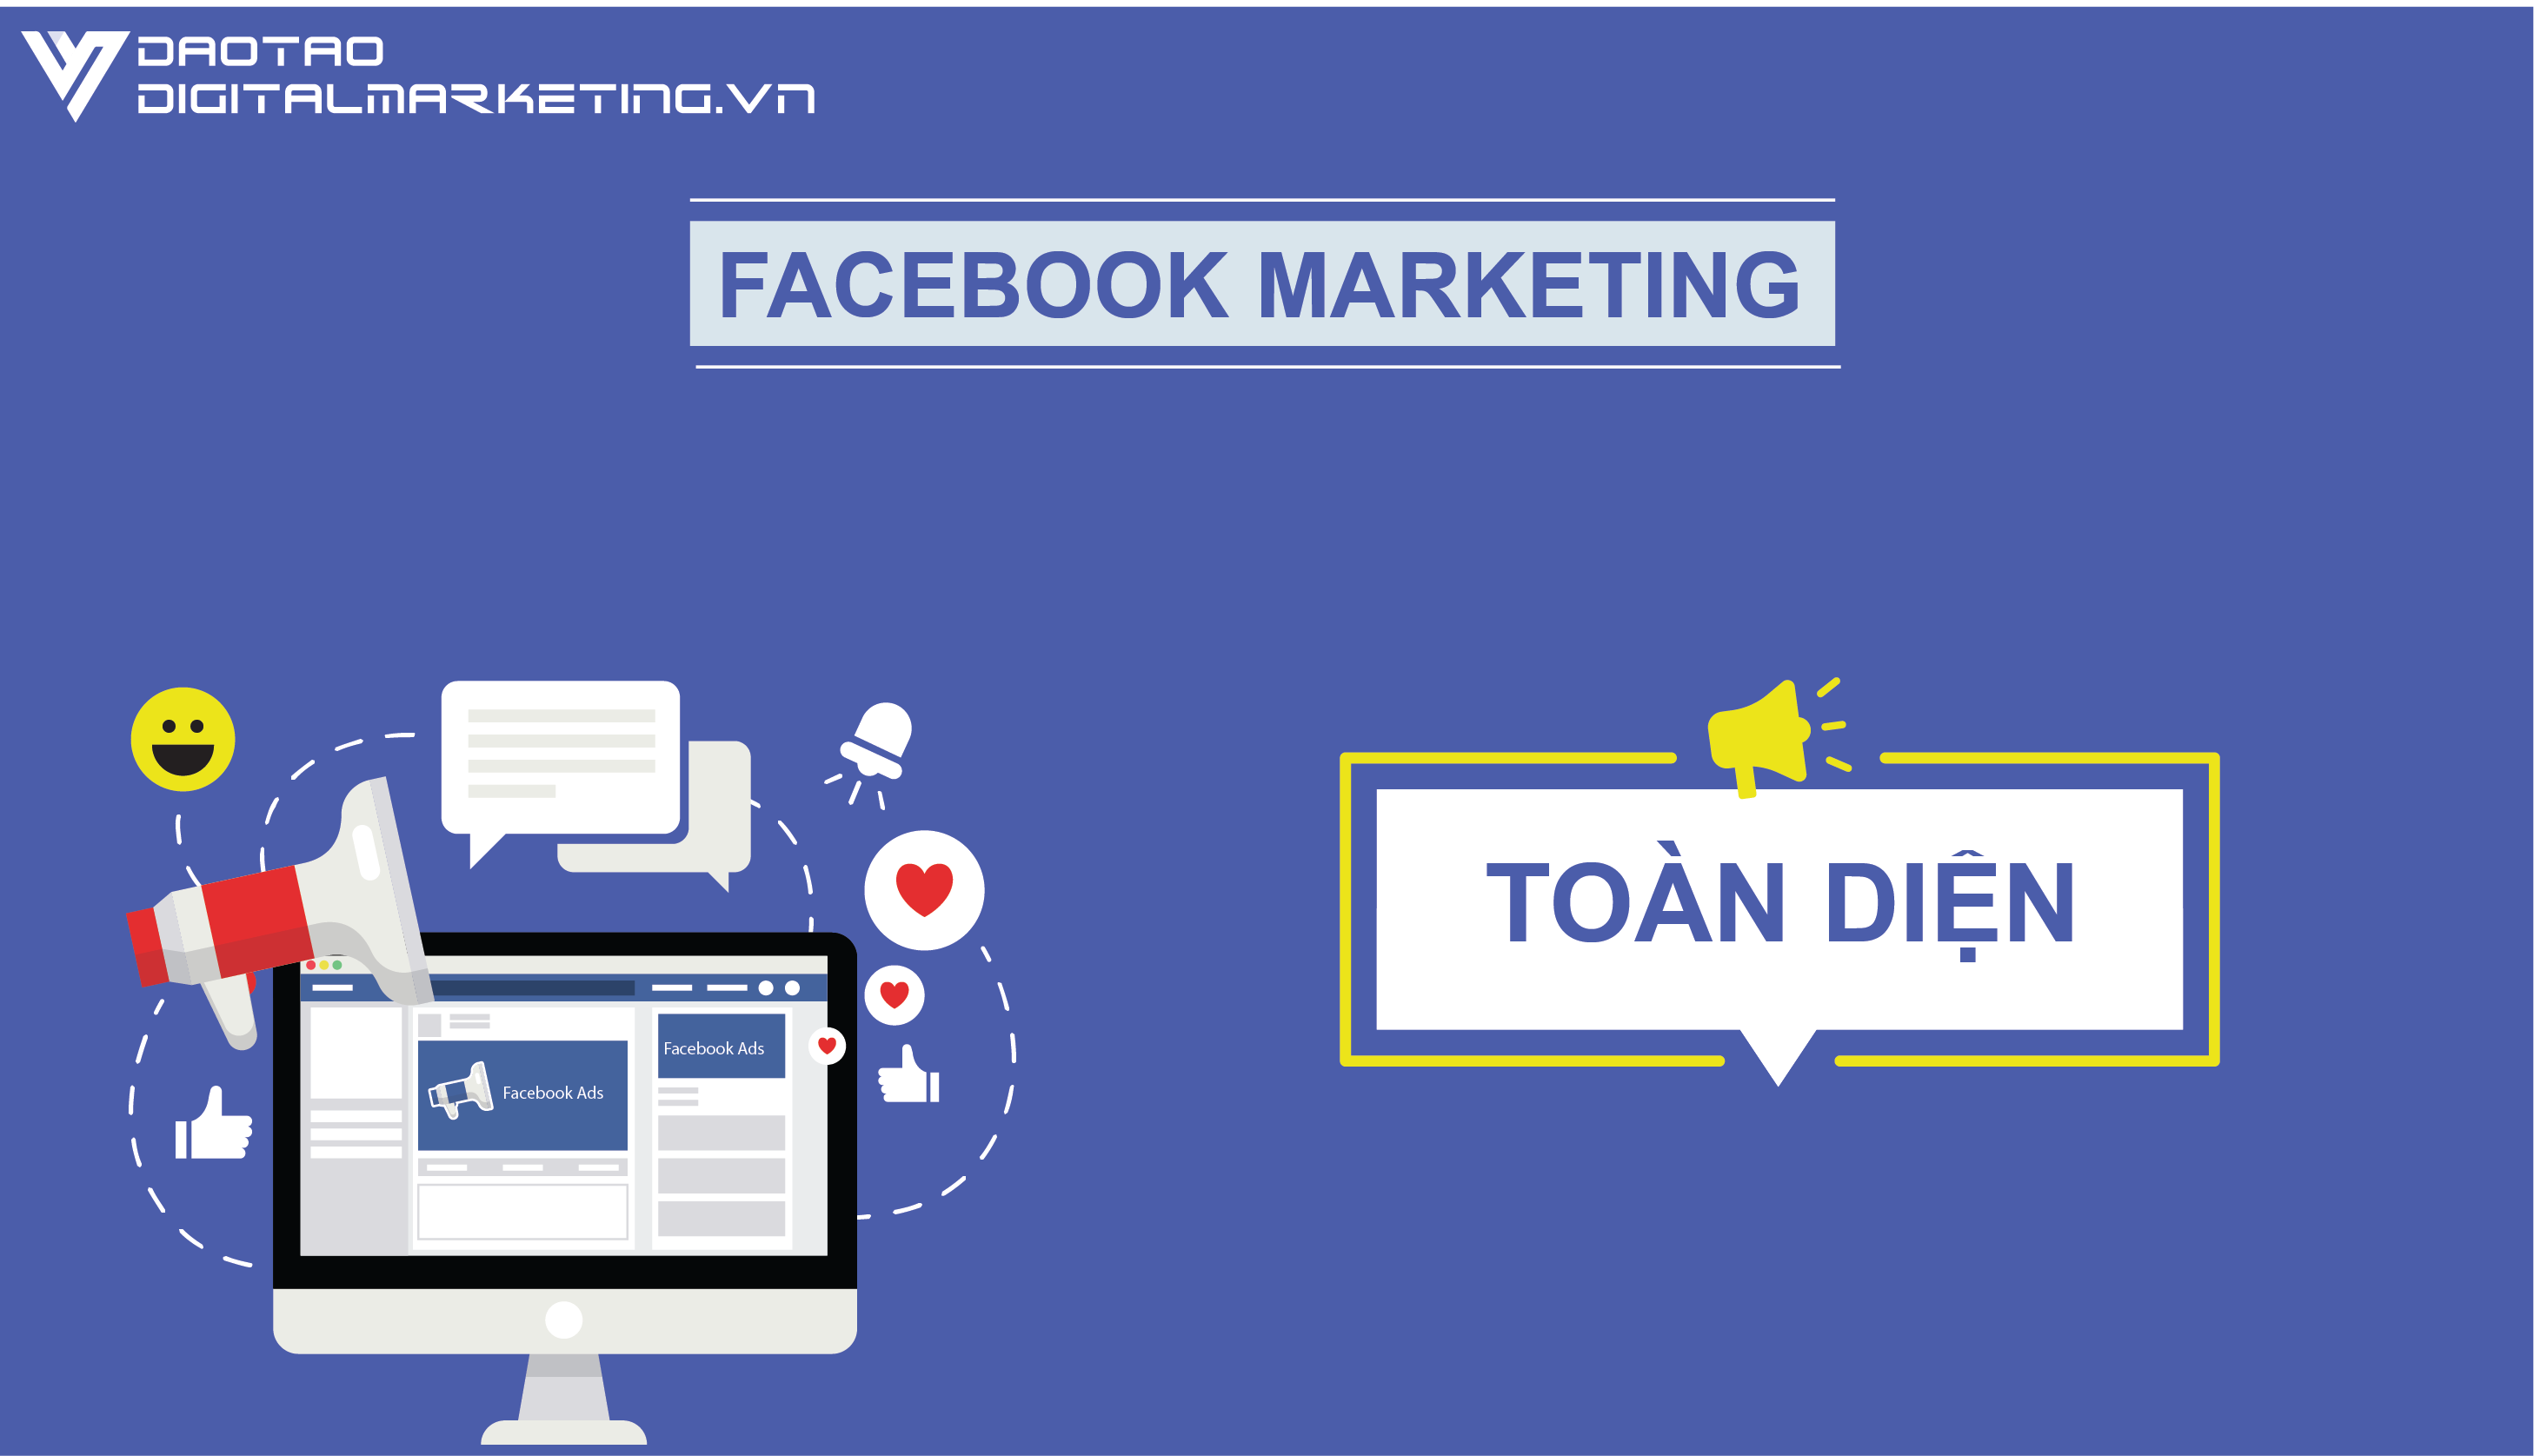 Facebook-marketing-trung-tam-dao-tao-digital-marketing